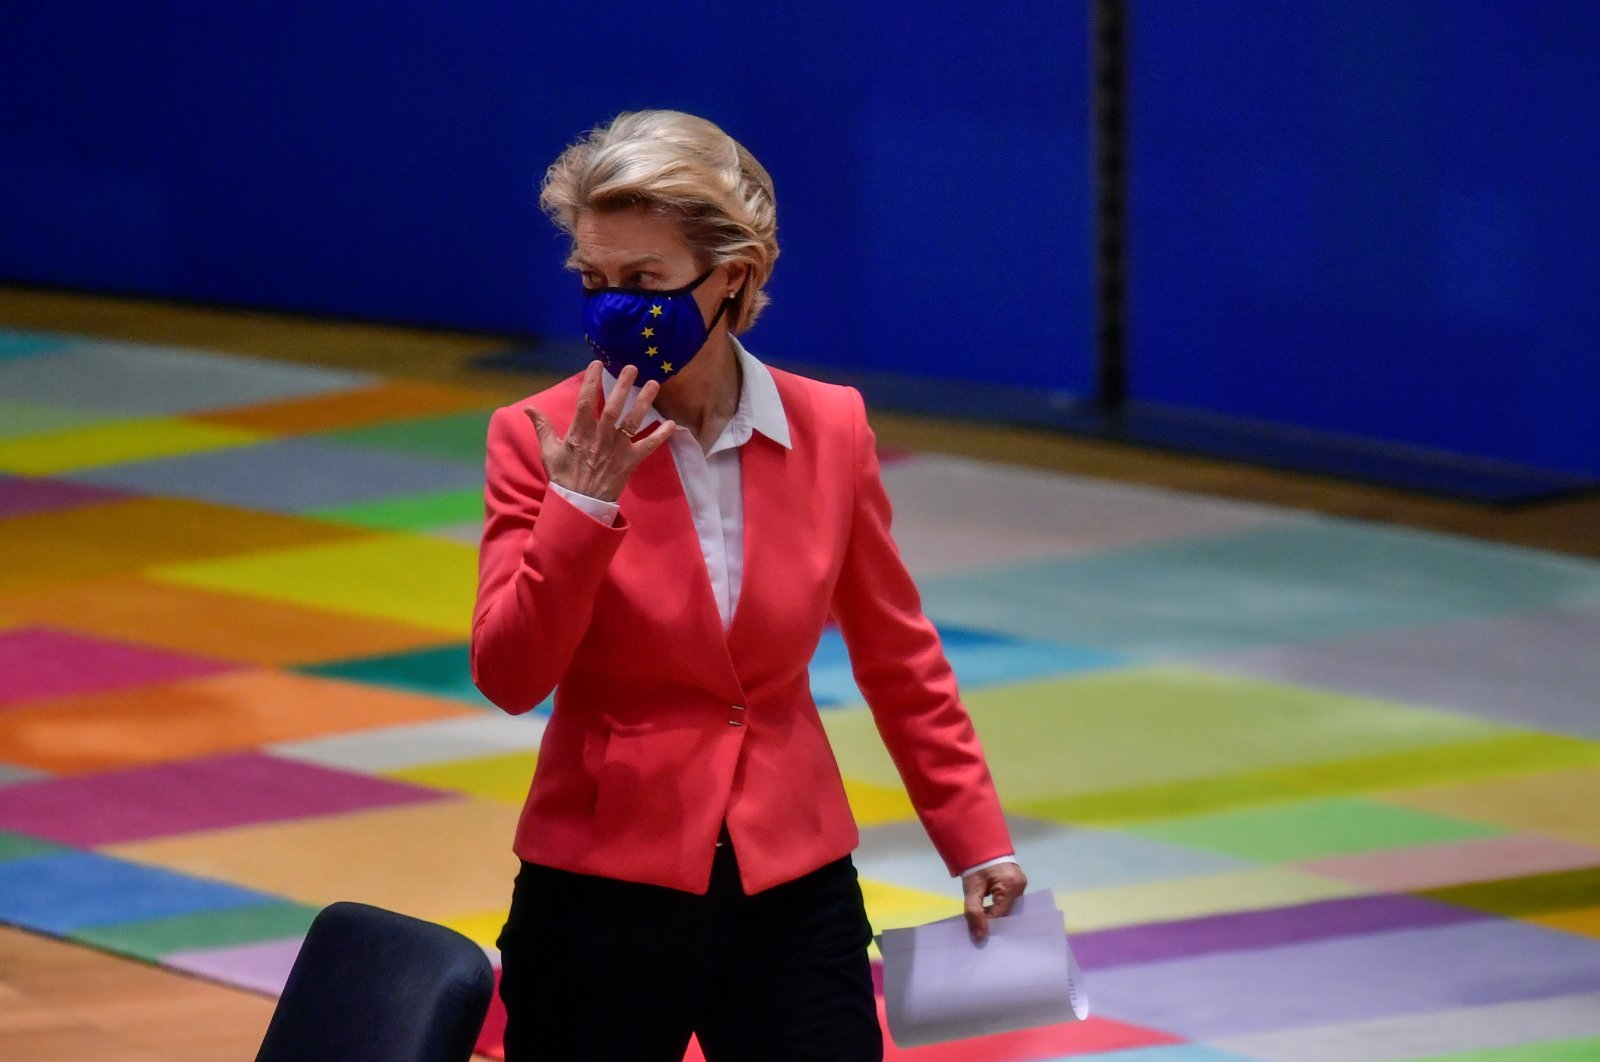 European Commission President Ursula von der Leyen gestures as she arrives for a roundtable meeting during the second face-to-face European Union summit since the coronavirus disease (COVID-19) outbreak, in Brussels, Oct. 2, 2020. (Reuters Photo)